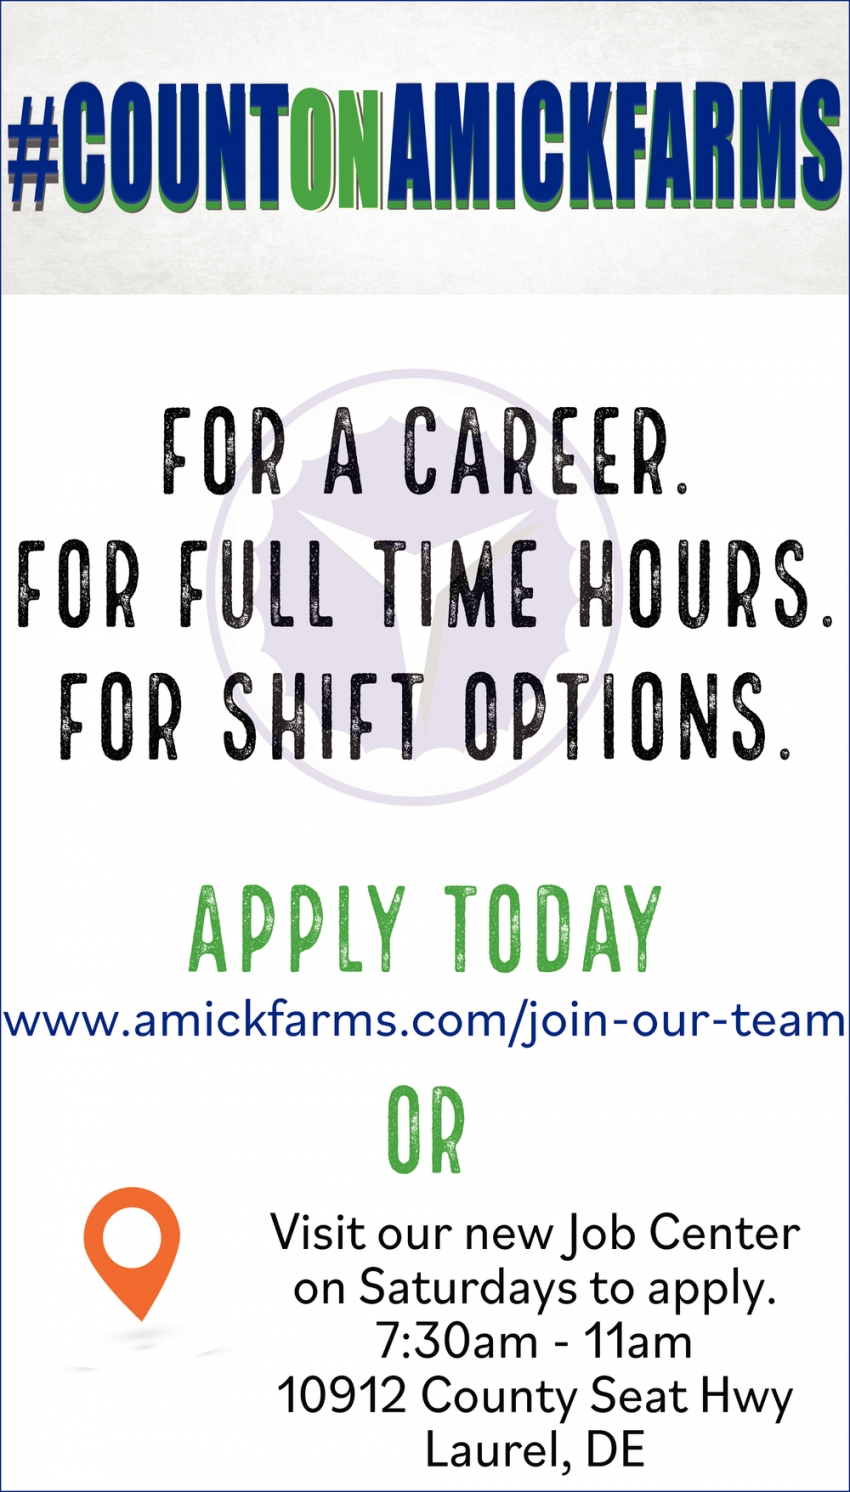 For A Career. For Full Time Hours.